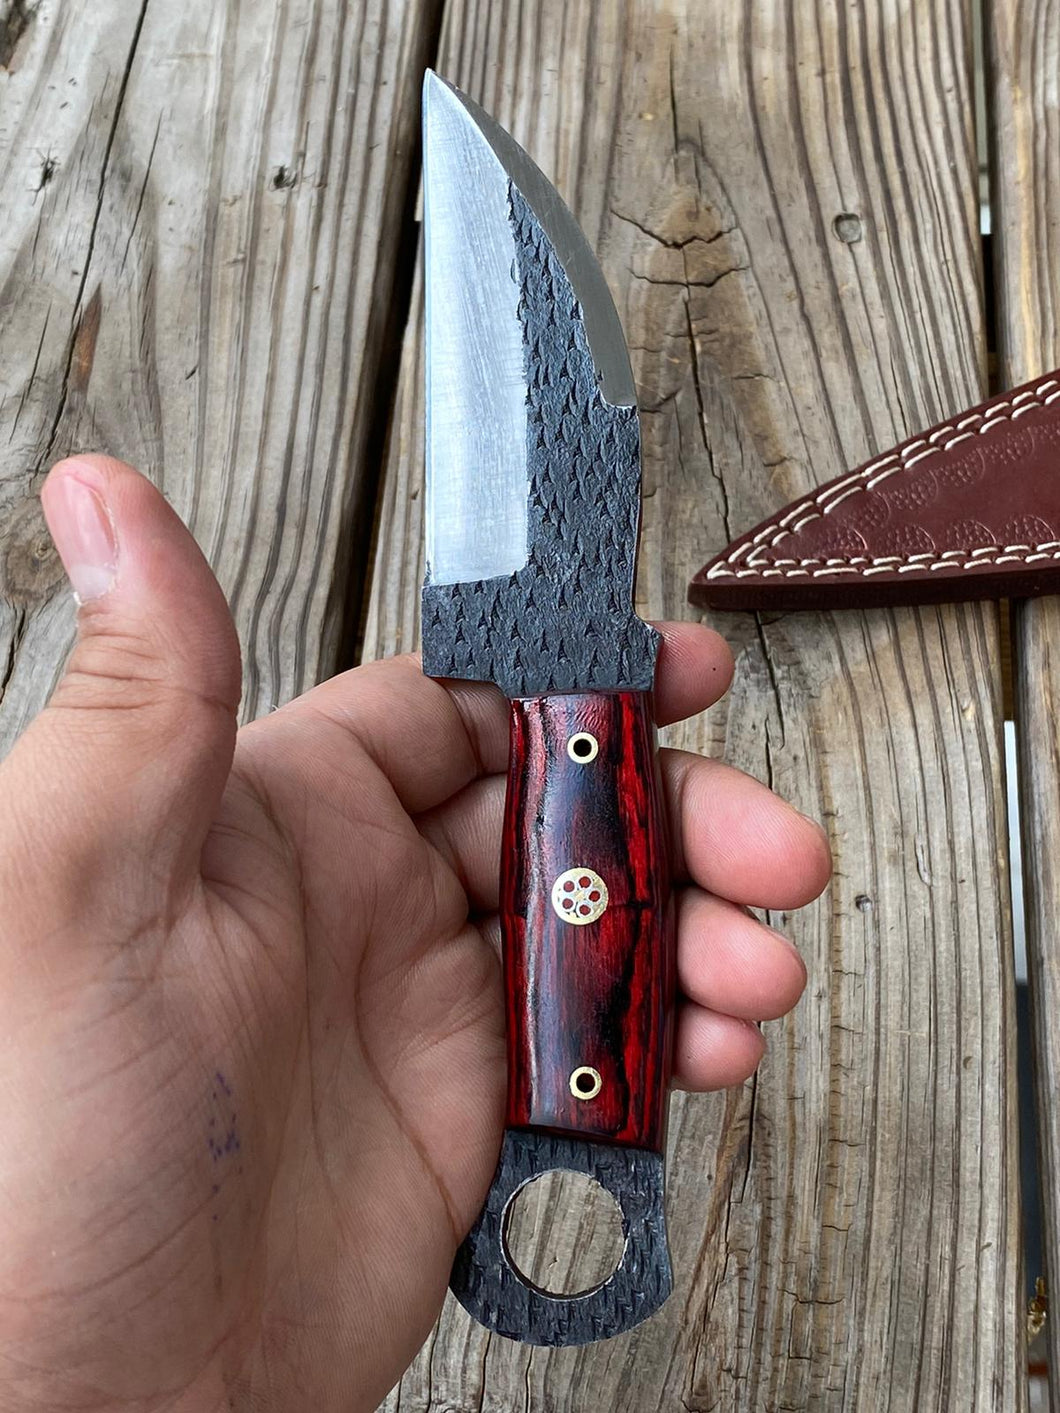 Customs Hand Forged Railrod Spike Carbon Steel Hunting Knife Stained Wood Handle-AJ-099